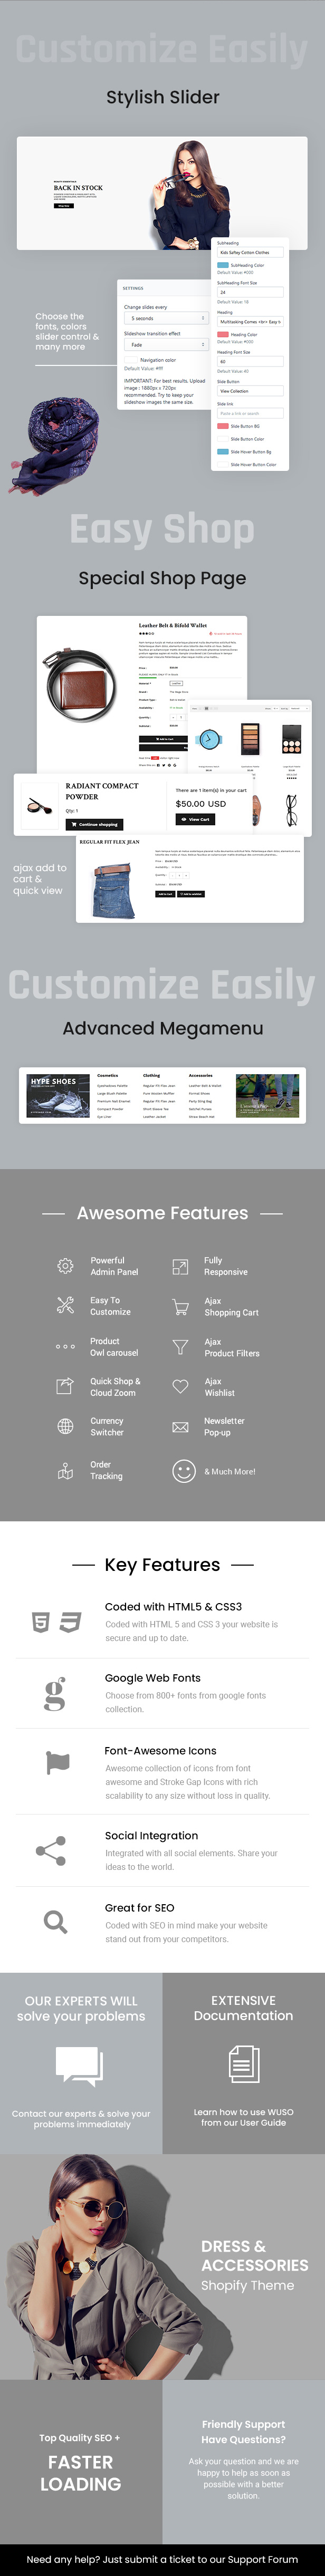 Wuso - Fashion Responsive Shopify Theme - 1